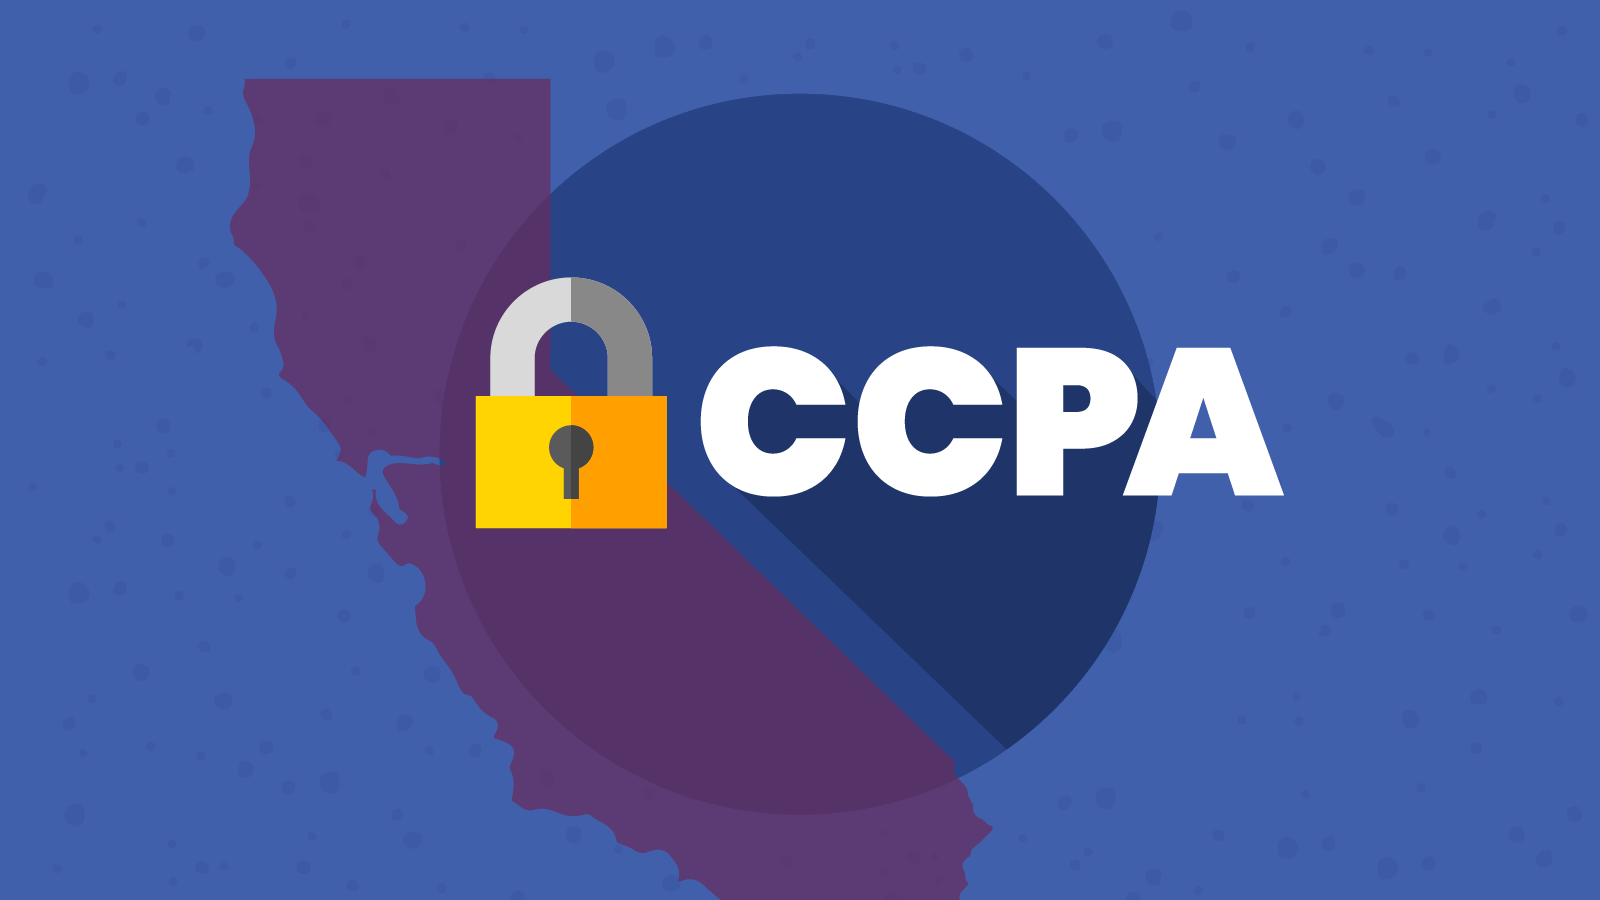 State of California with padlock illustrating CCPA compliance